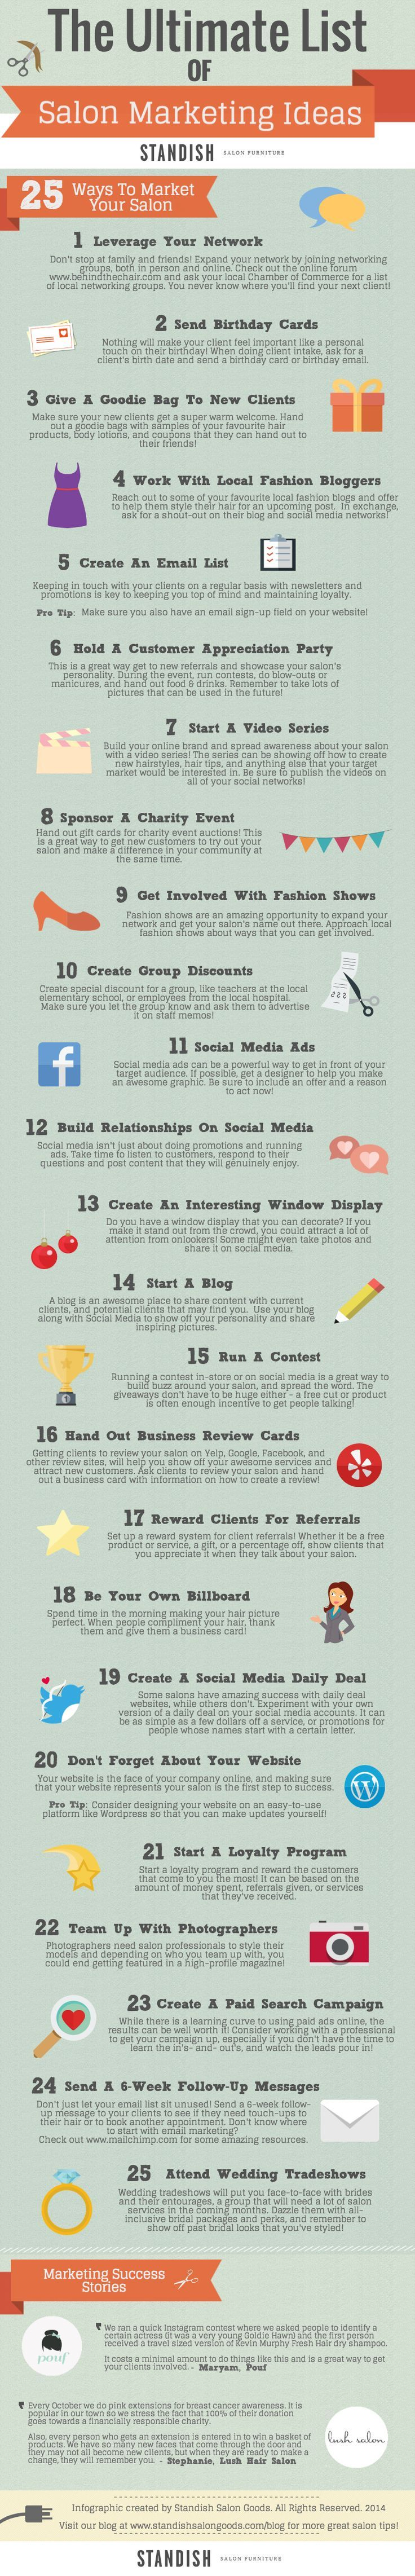 Want to boost your salon's holiday sales? Check out our infographic for 25 ways to market your salon! http://goo.gl/RnW4Sp